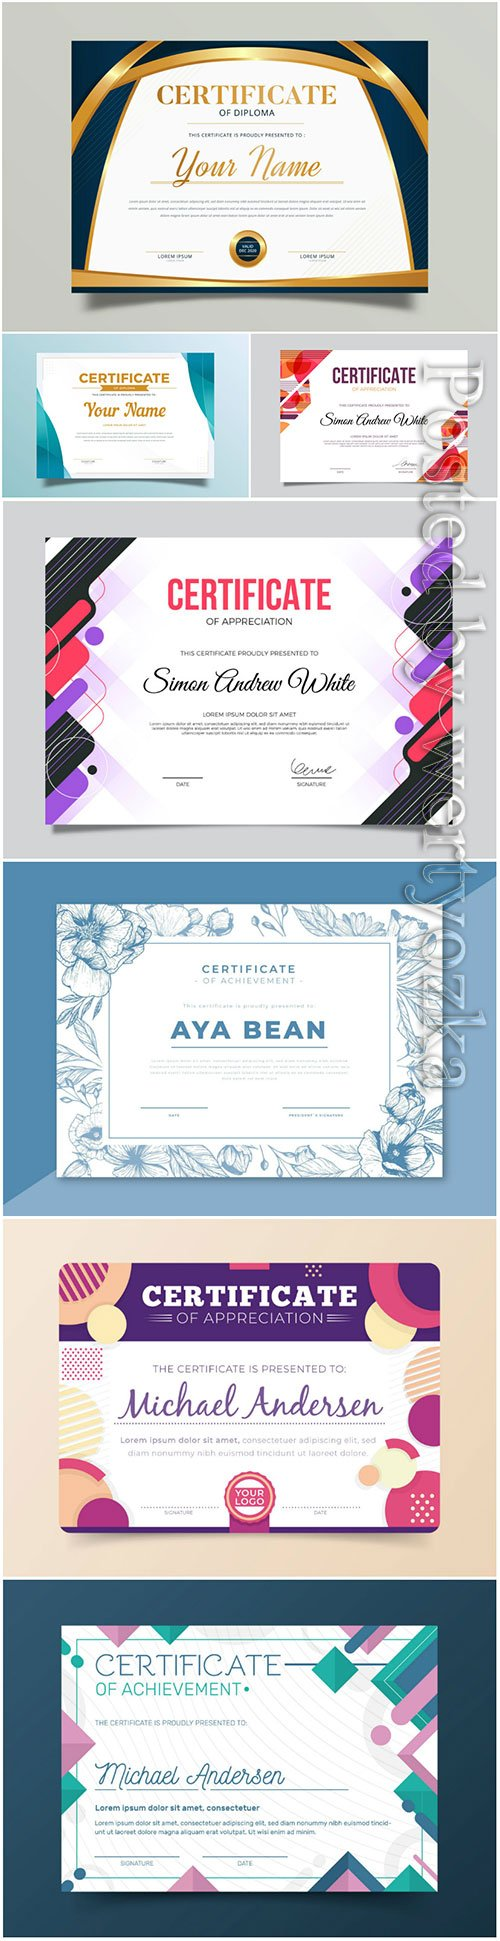 Certificates and diplomas templates in vector